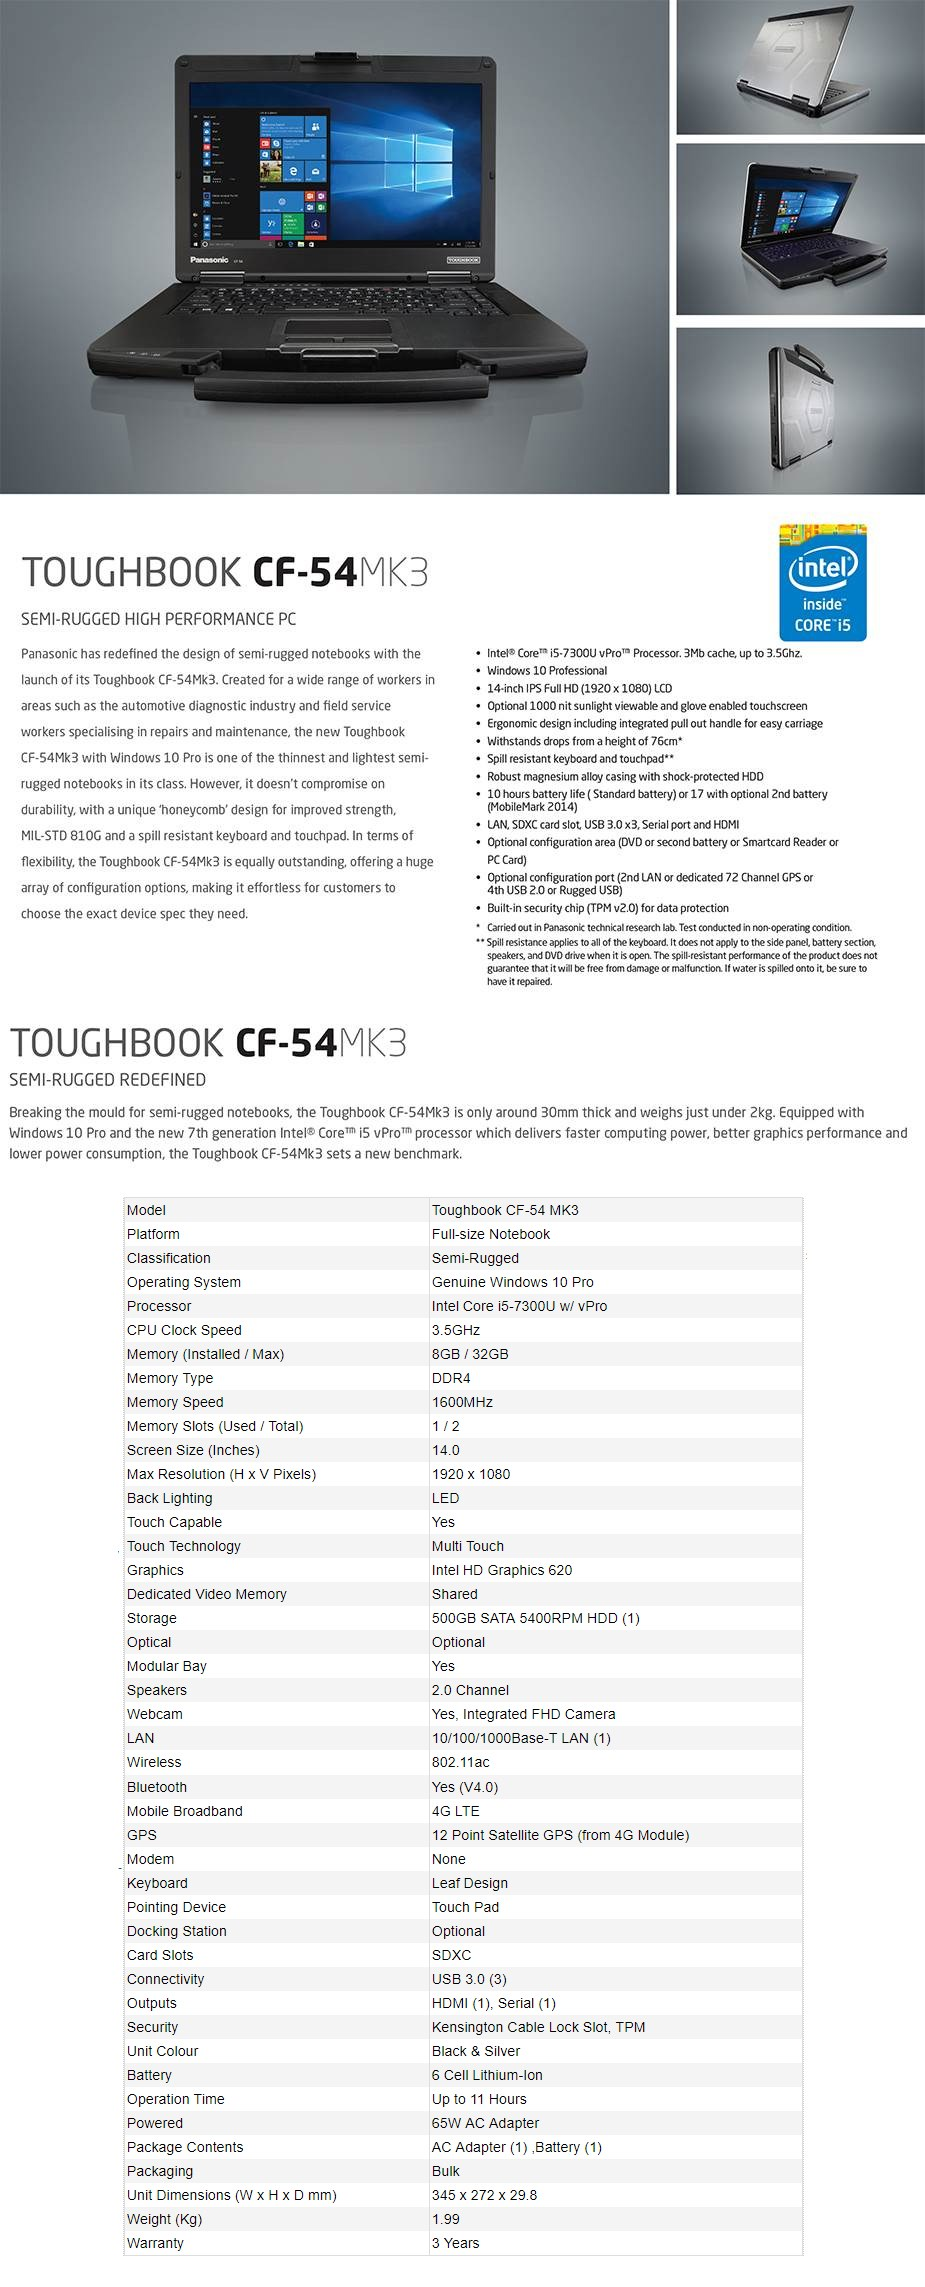 "Panasonic Toughbook Mk3 CF-54 14"" Notebook i5 8GB 500GB Win10 4G Touch - Desktop Overview 1"